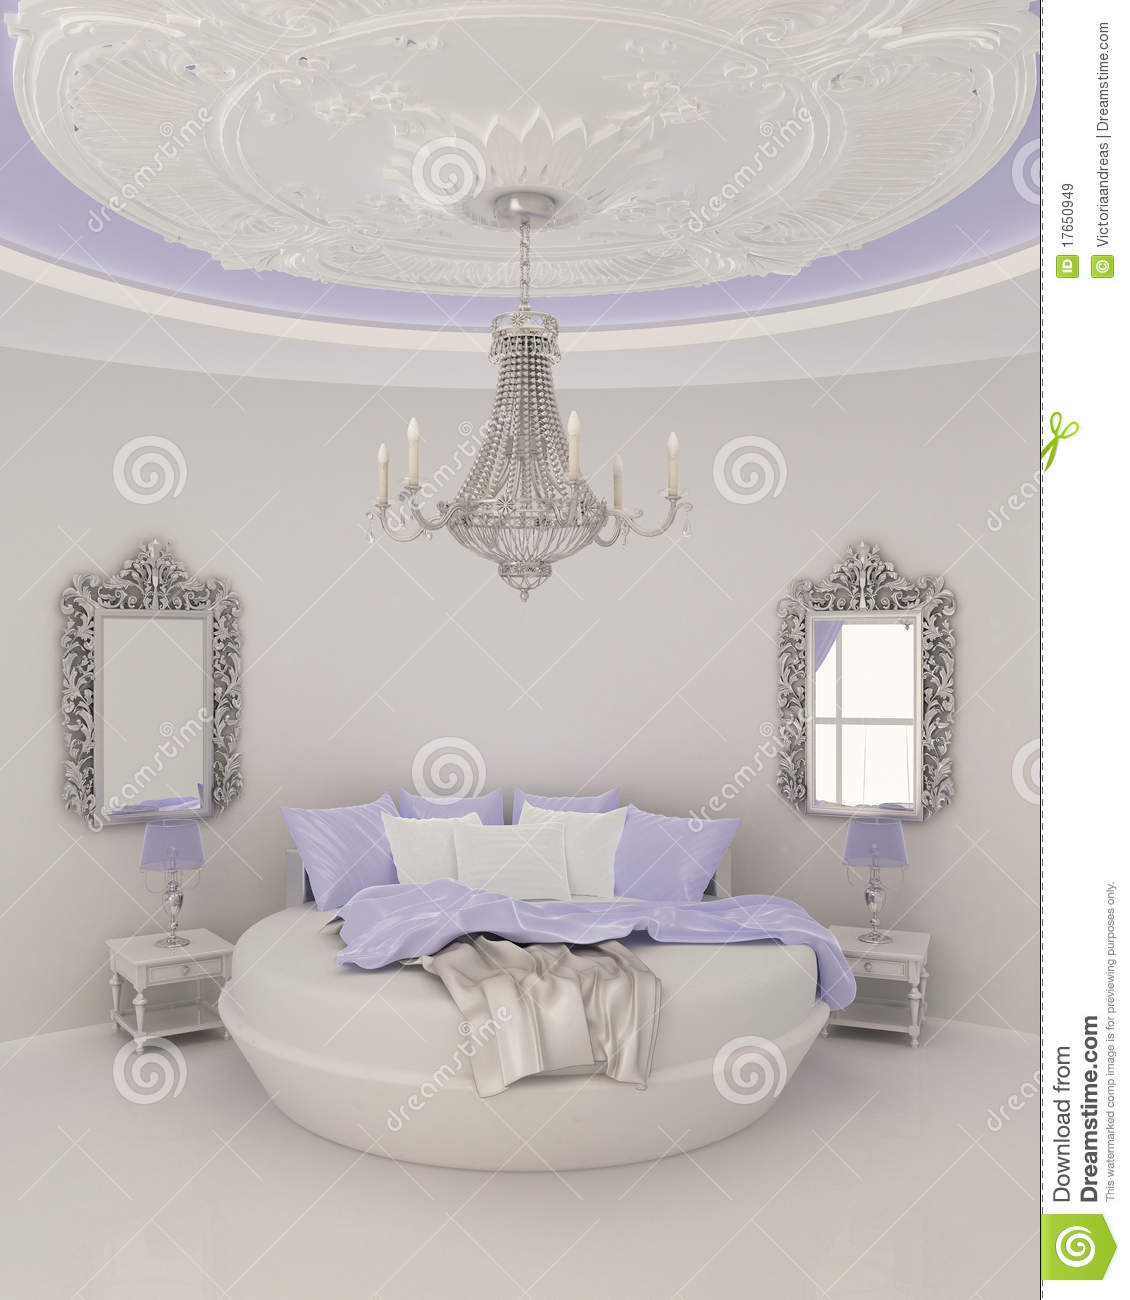 Ceiling Decor In Modern Bedroom Stock Illustration